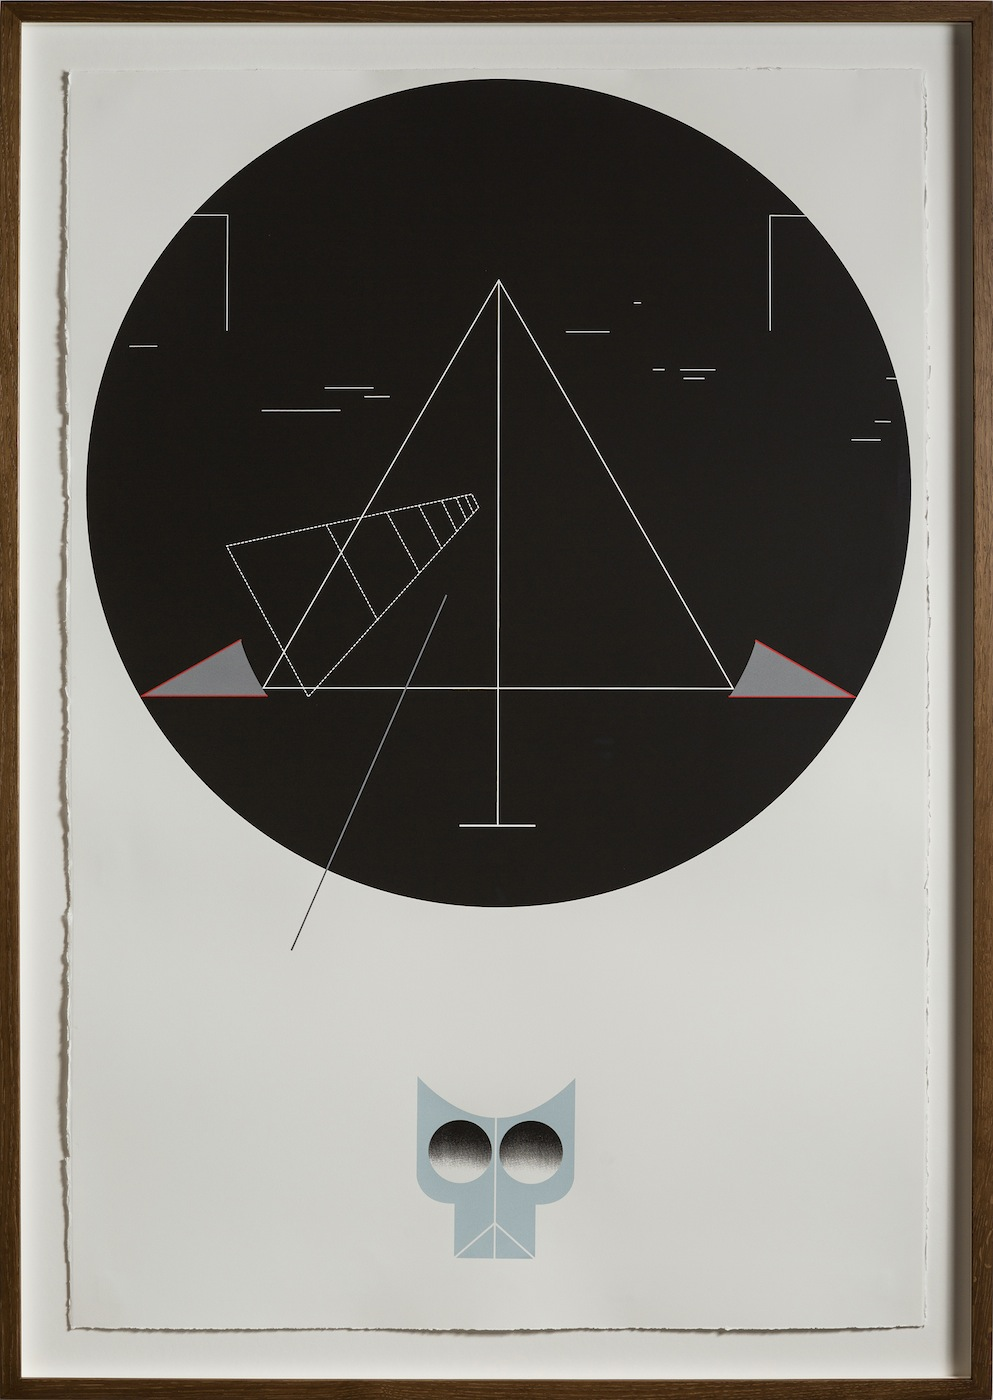 Night Walk 2013 Screen print on paper 112.5 x 76.5 cm Edition 5 + 1 AP